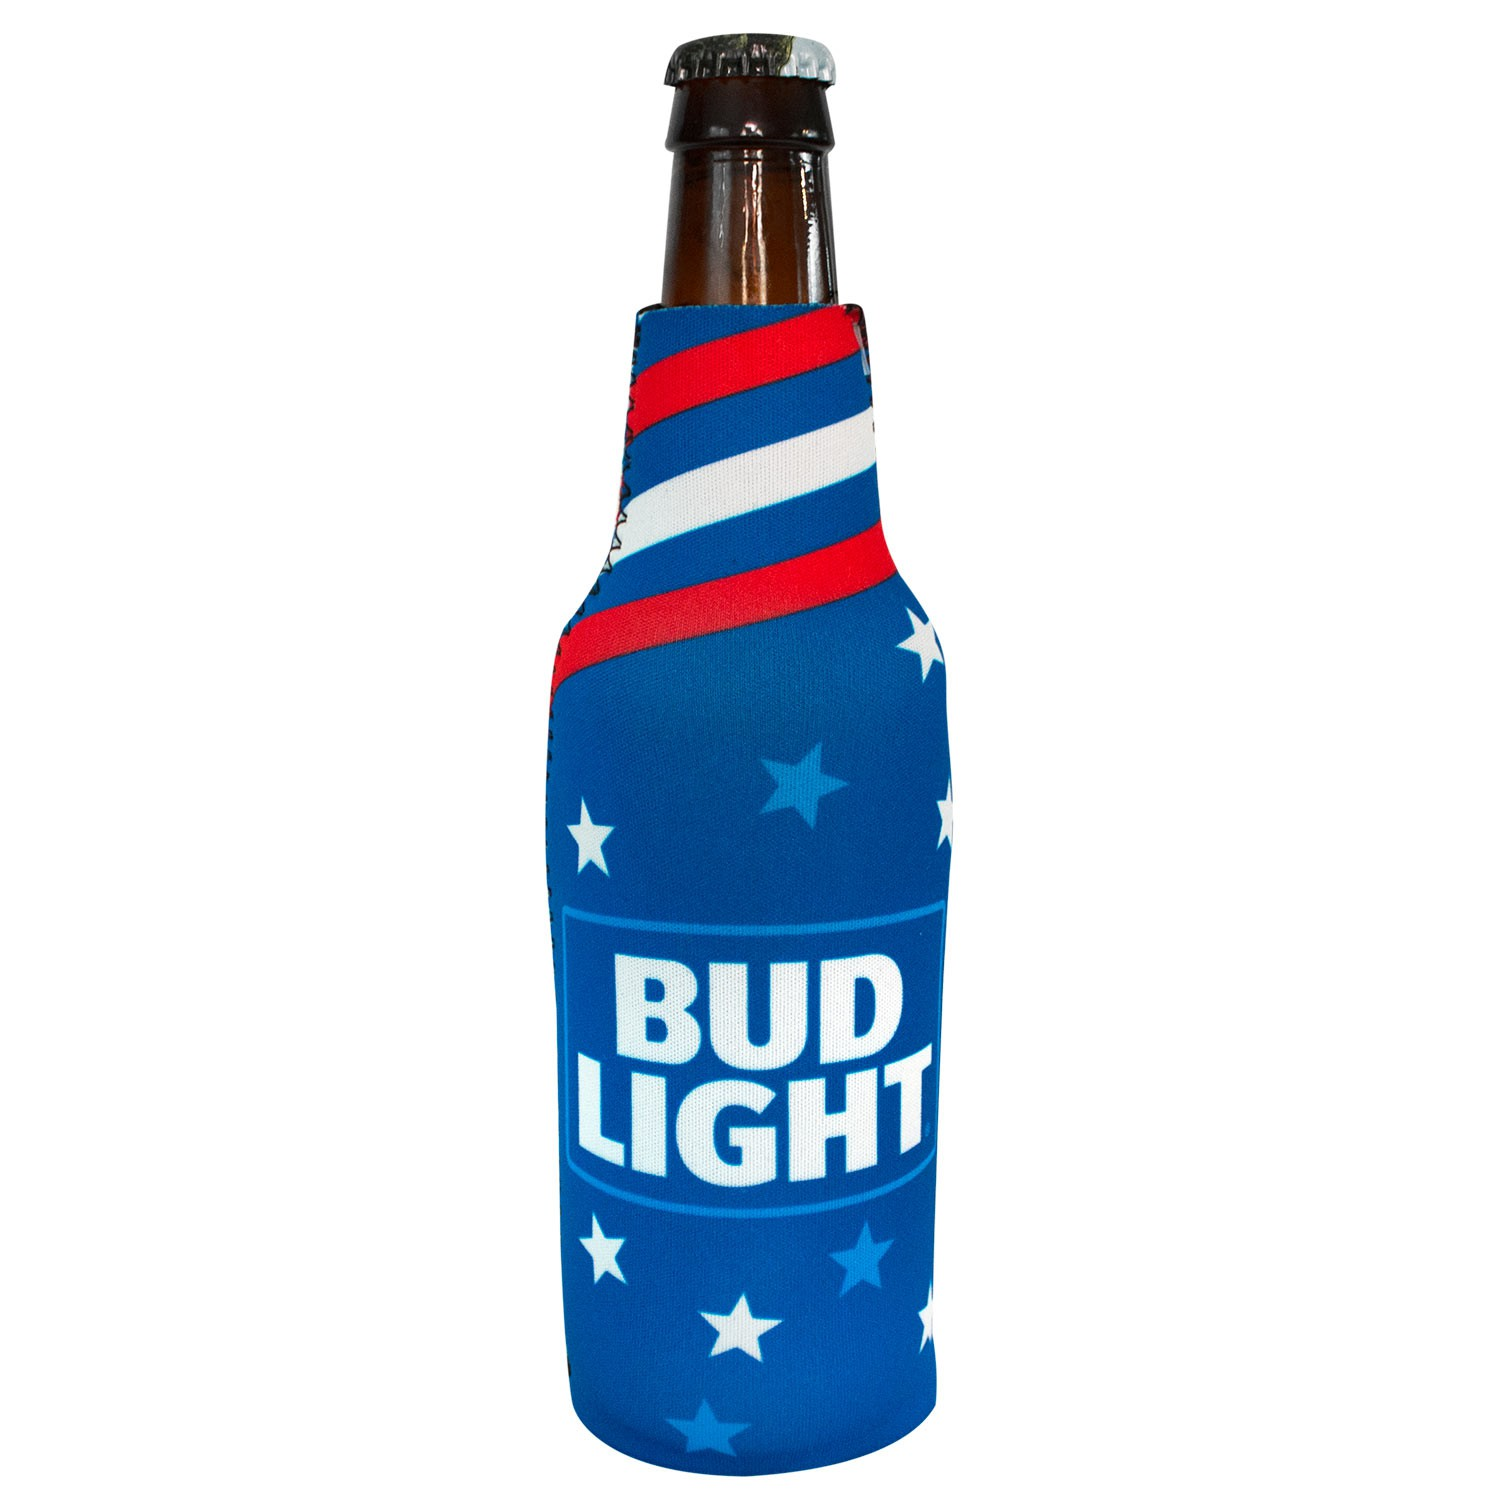 Bud Light Patriotic Bottle Cooler